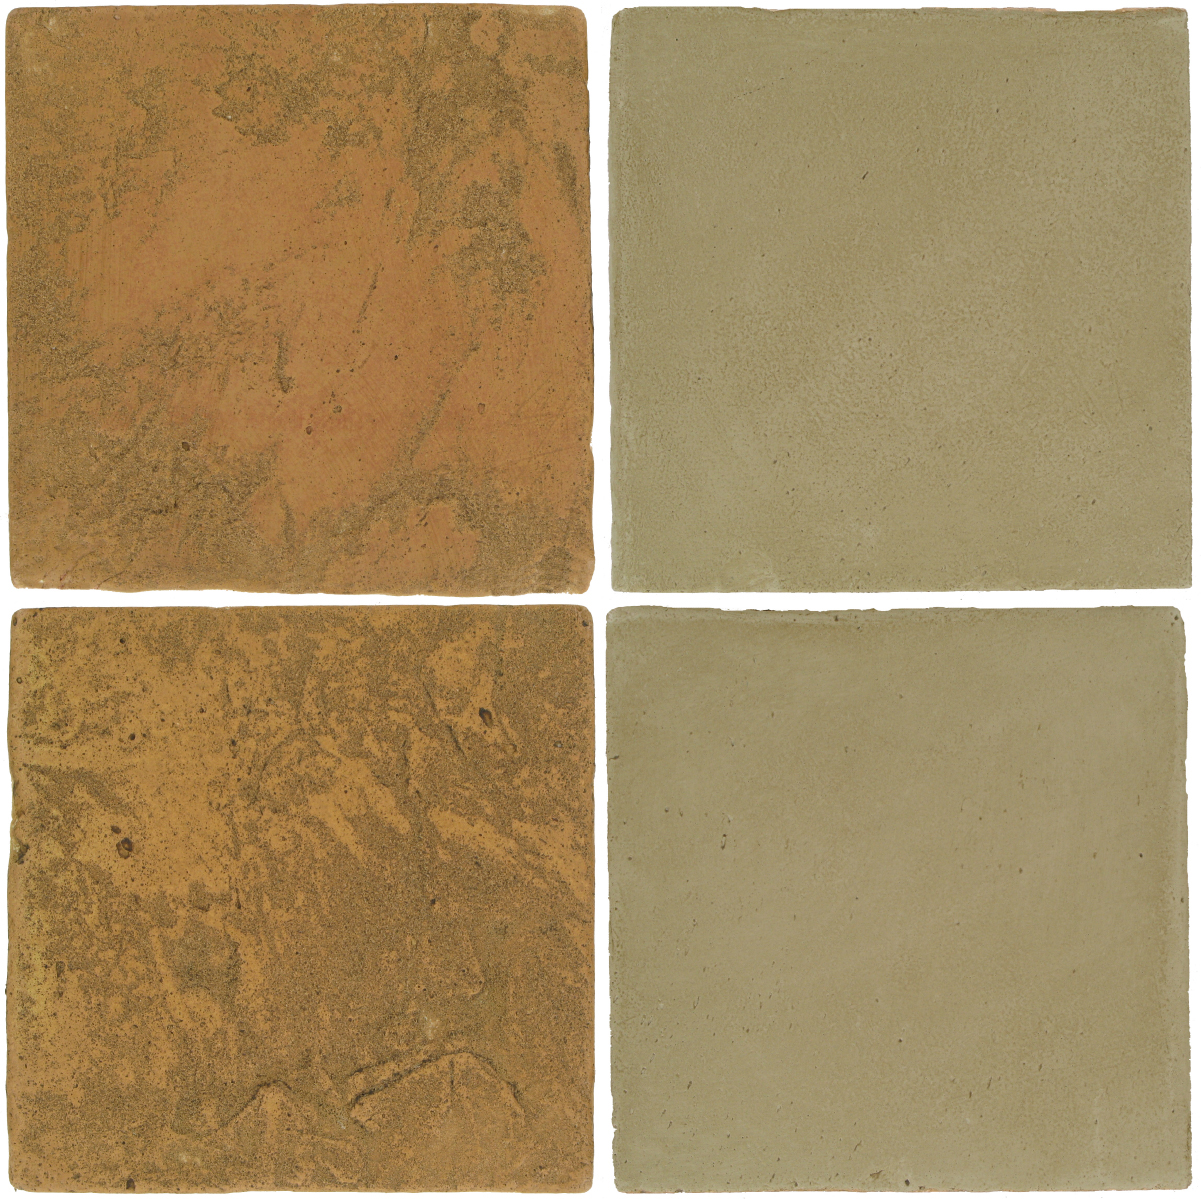 Pedralbes Antique Terracotta  2 Color Combinations  VTG-PSSW Siena Wheat + OHS-PGDW Dirty W.